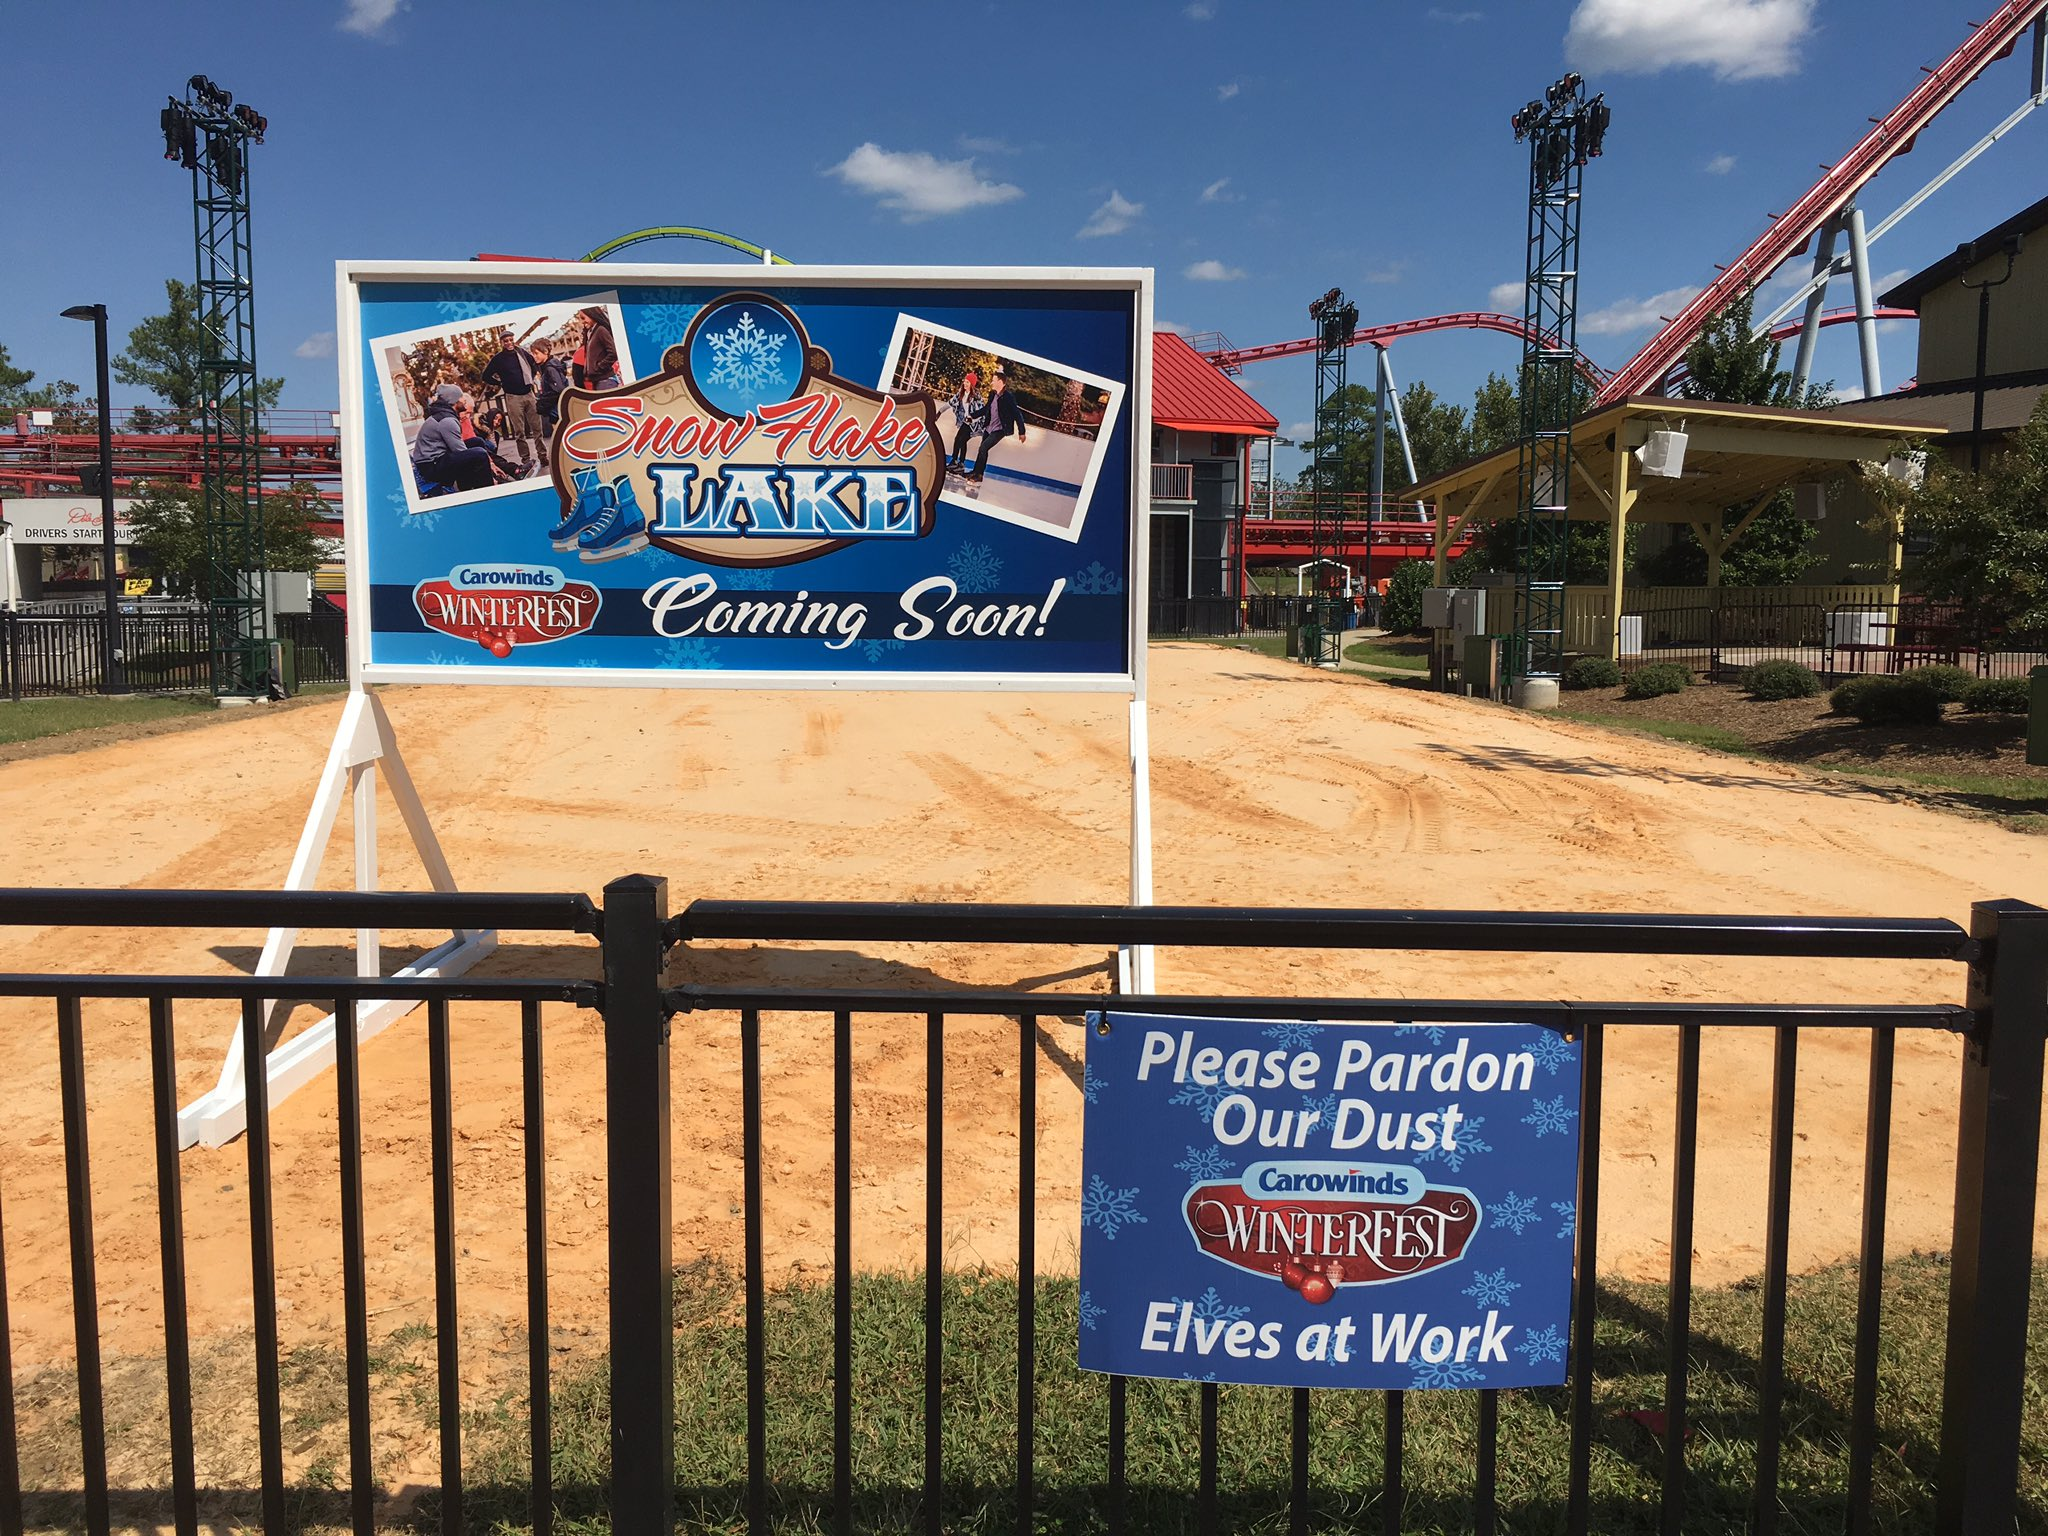 2017 Carowinds Winterfest Snowflake Lake Construction